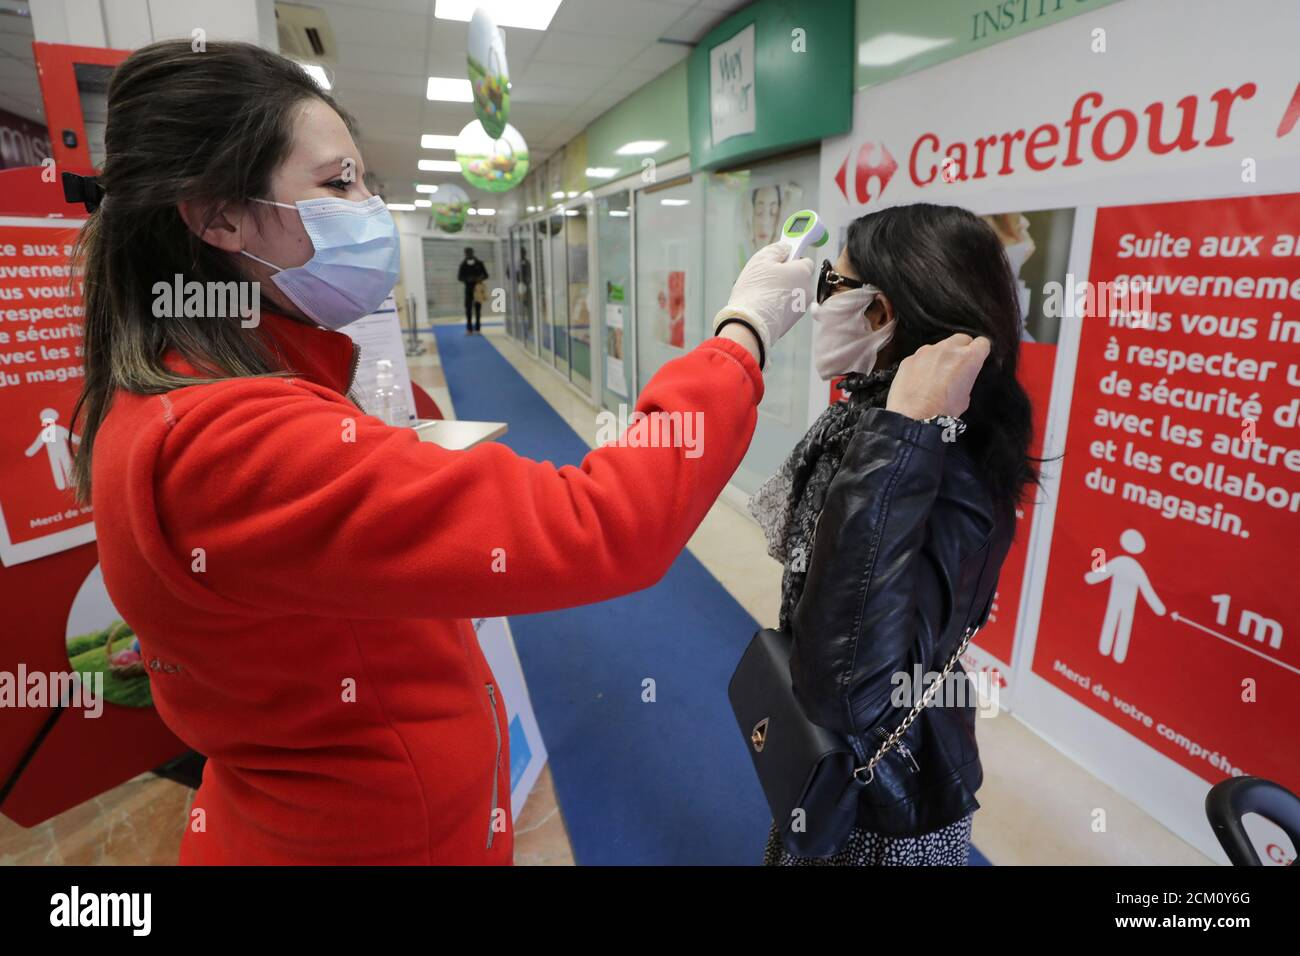 https www alamy com an employee wearing a protective face mask checks the temperature of a customer before she enters inside a carrefour market in cannes as the spread of the coronavirus disease covid 19 continues in france april 8 2020 reuterseric gaillard image373732200 html